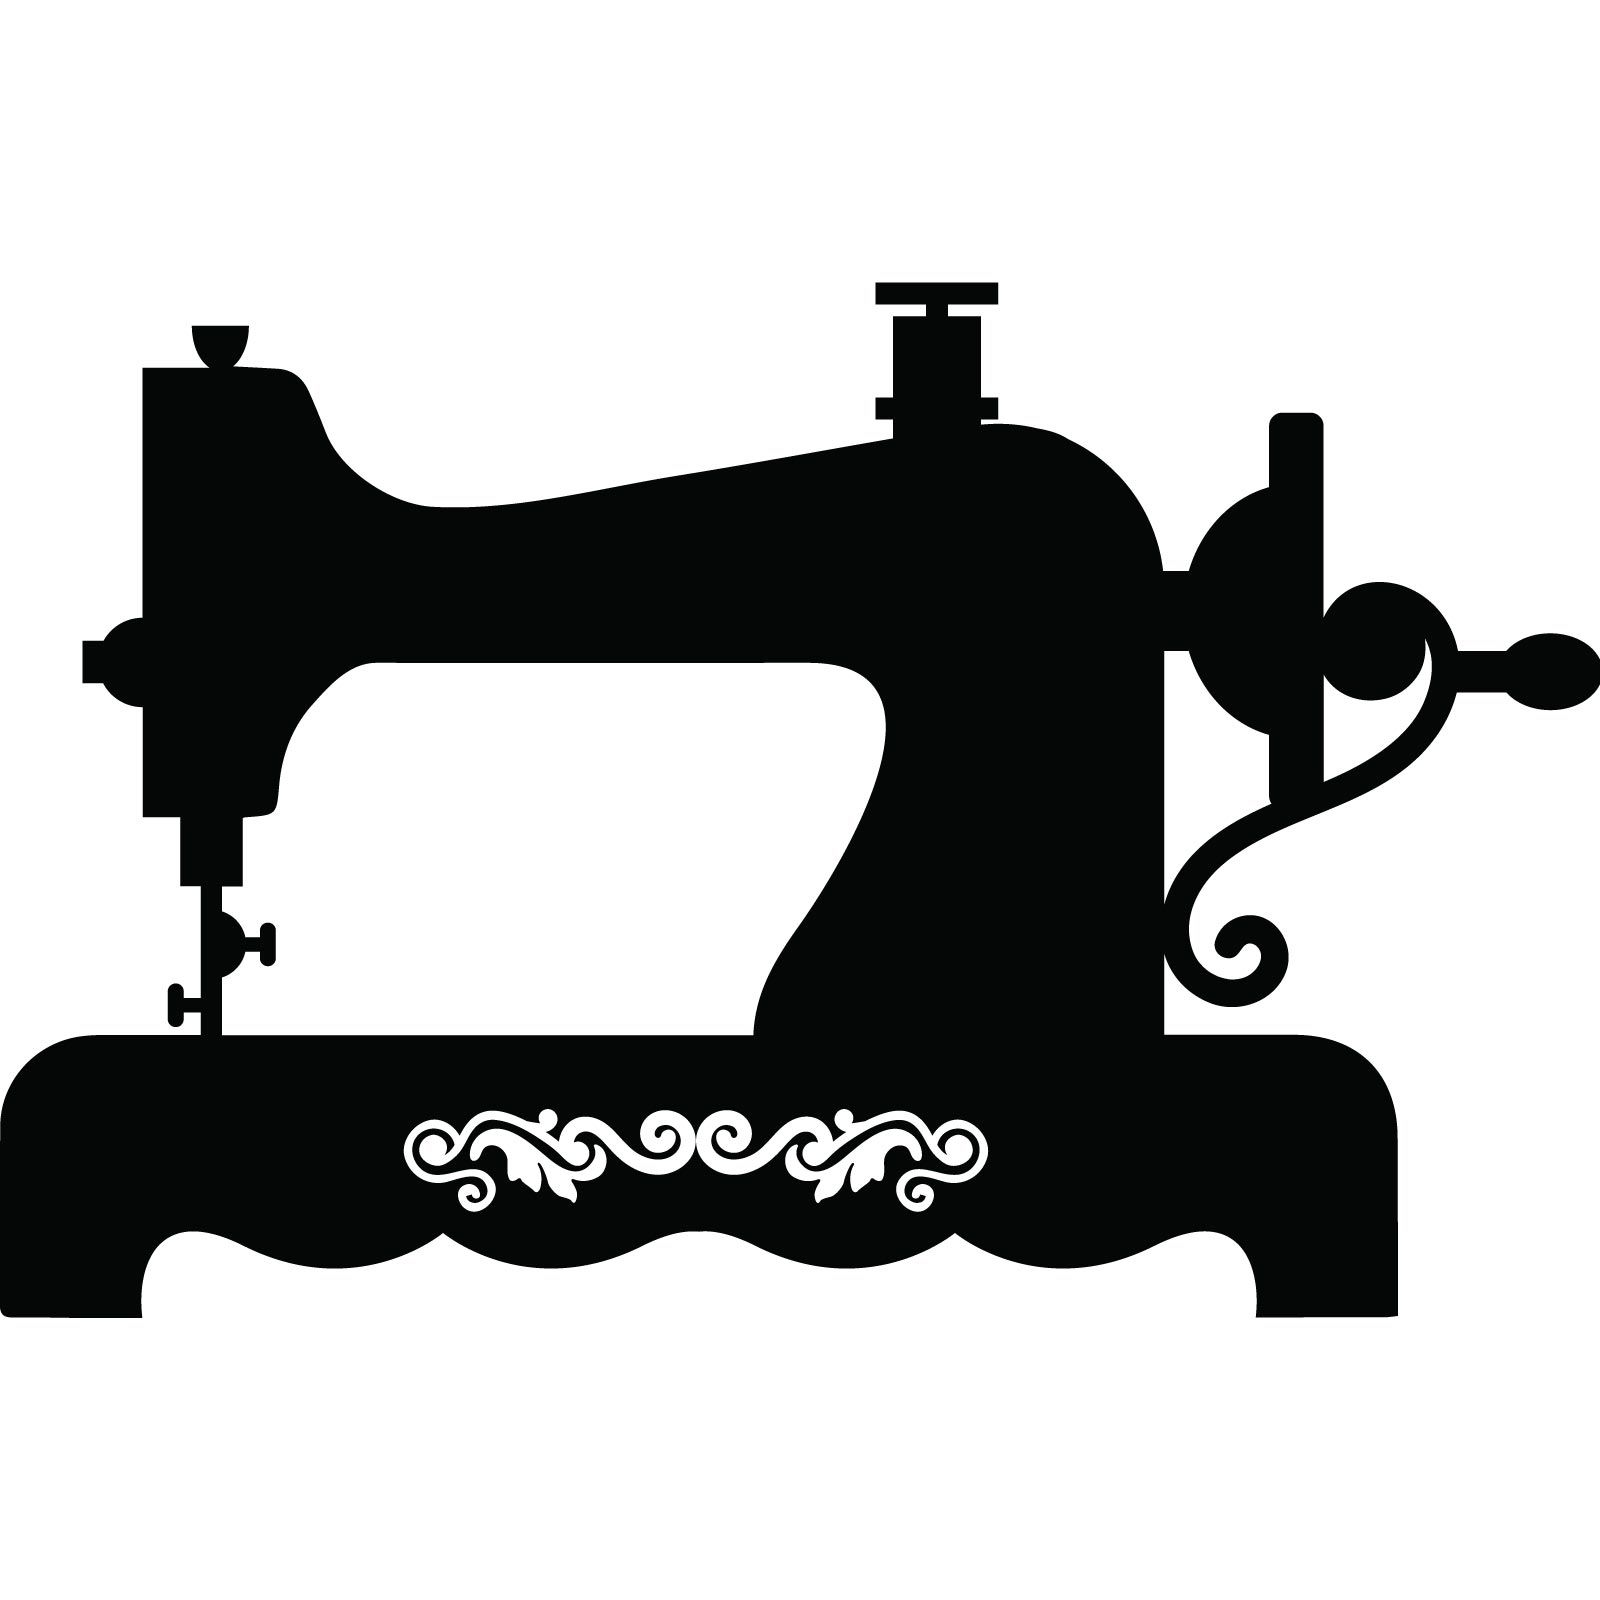 1600x1600 Image Result For Vintage Sewing Machine Silhouette Cricut